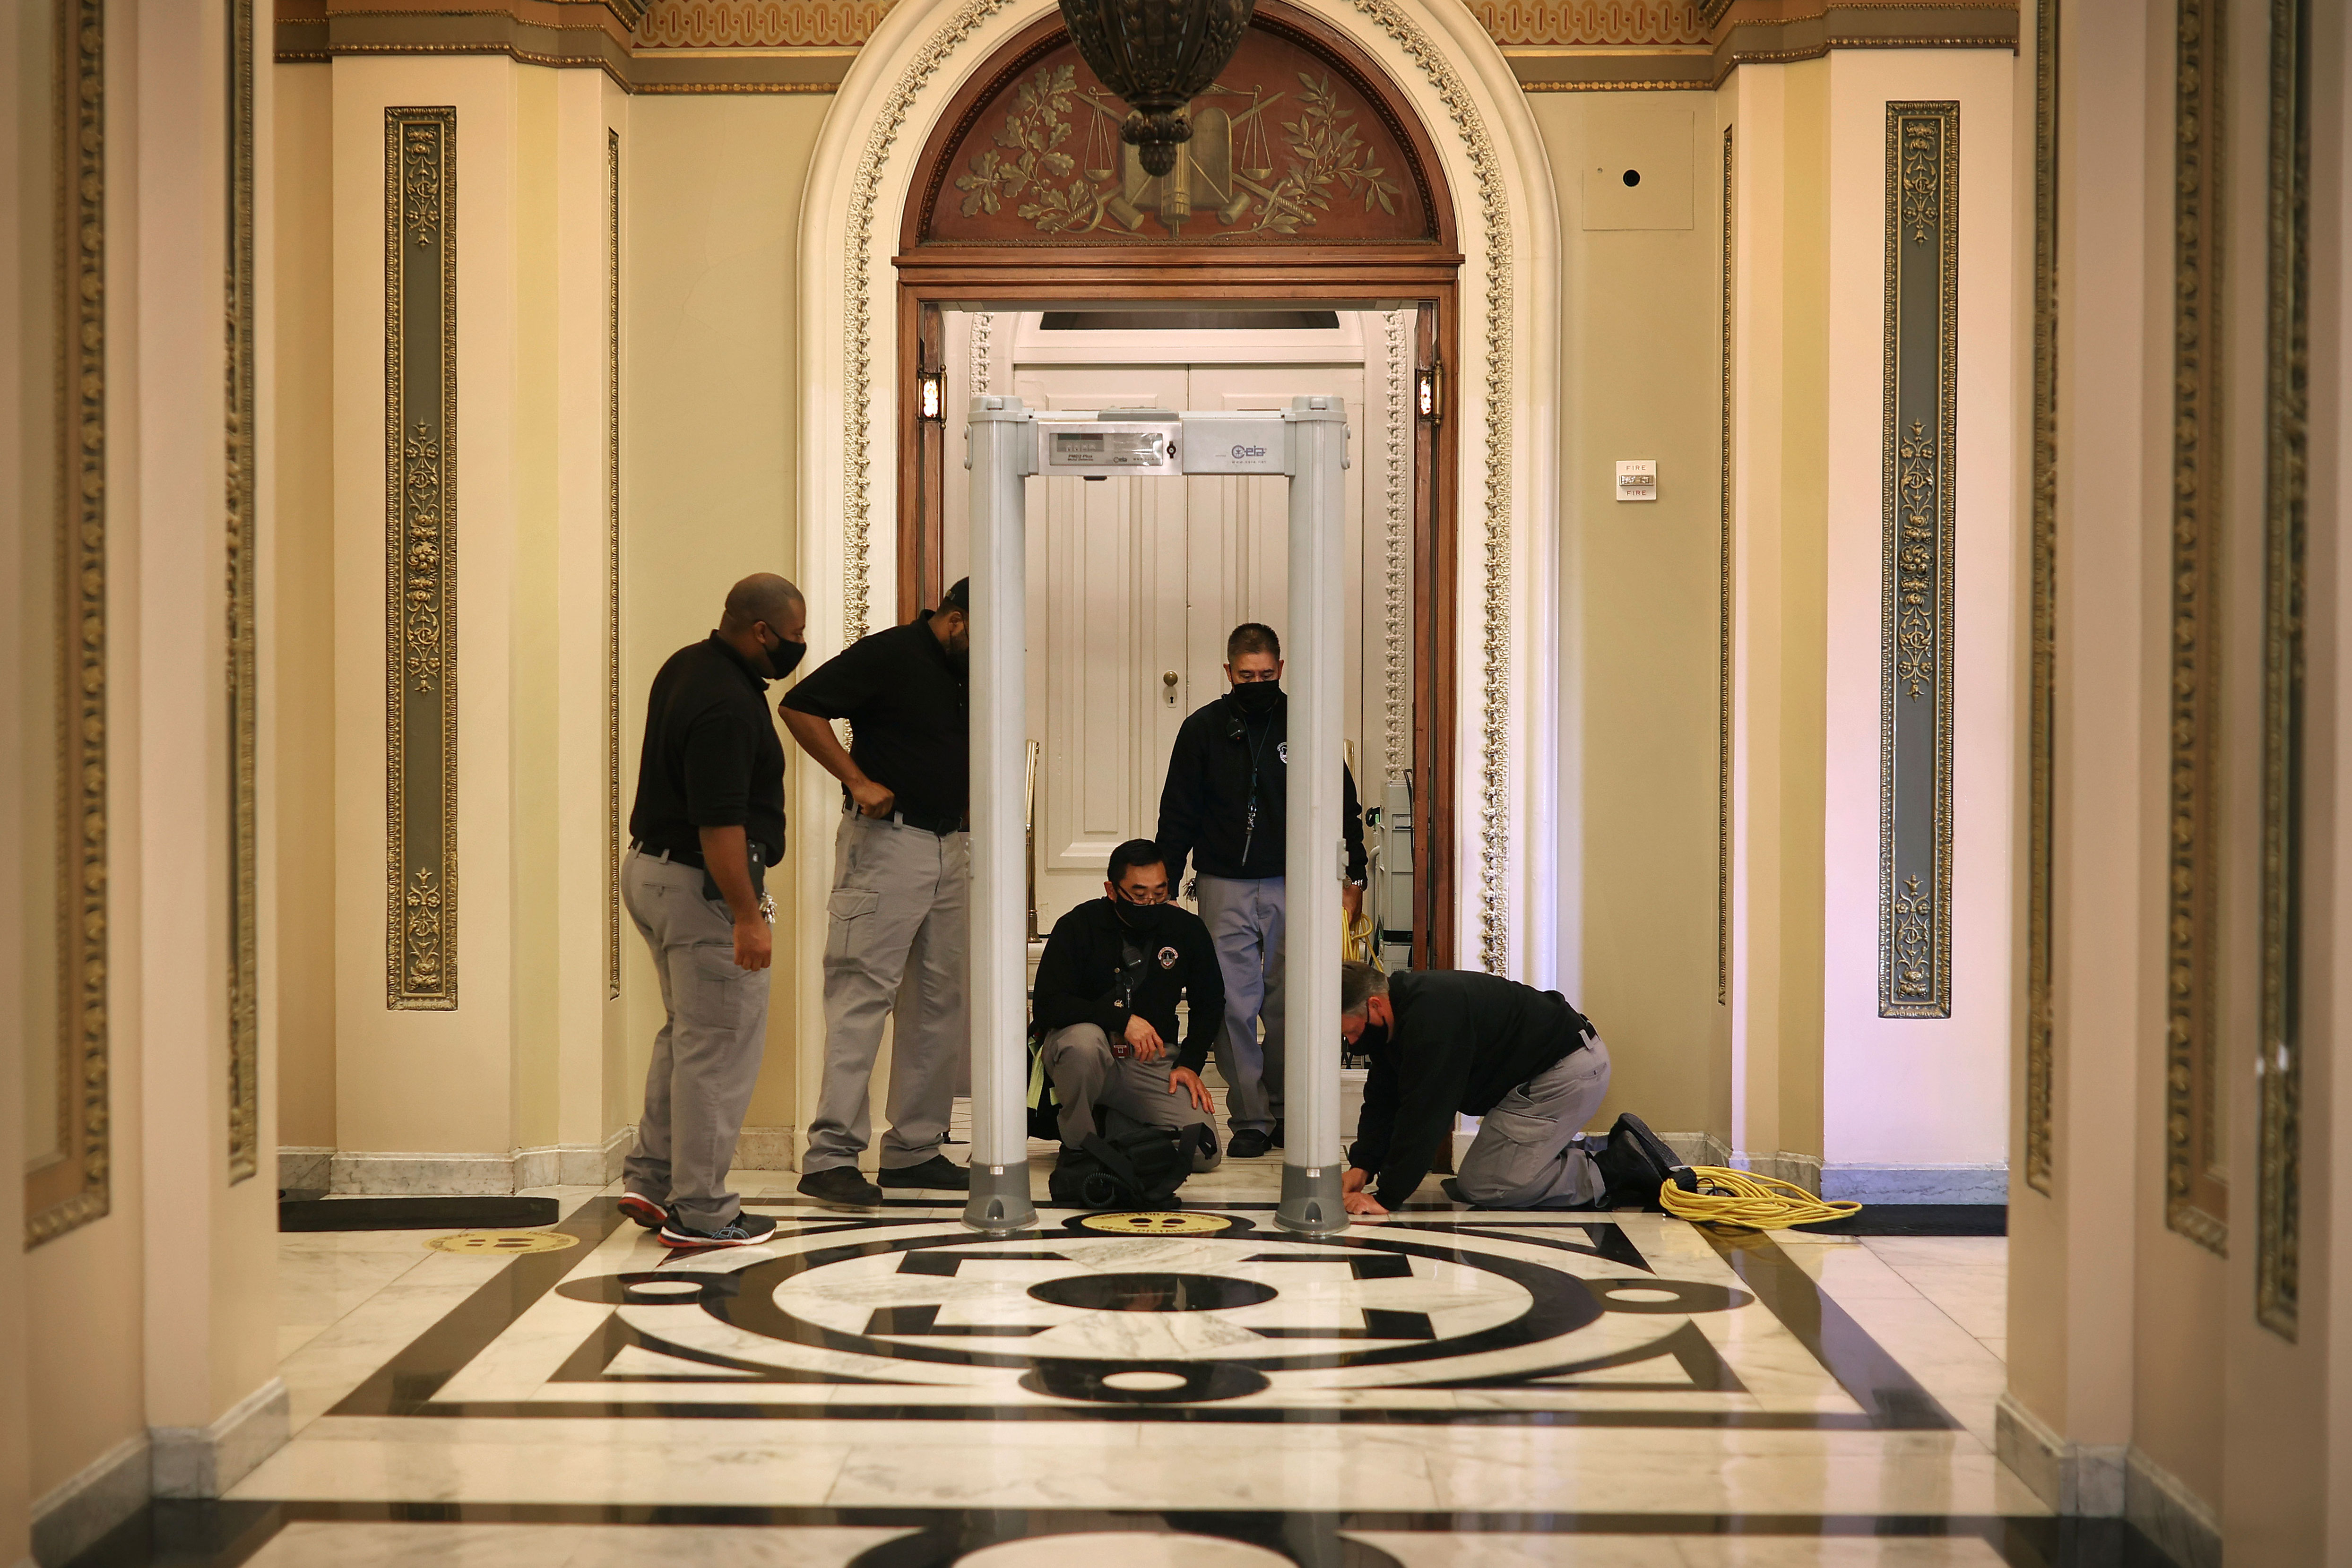 Lawmakers express fears about Capitol safety while tensions grow over new security measures